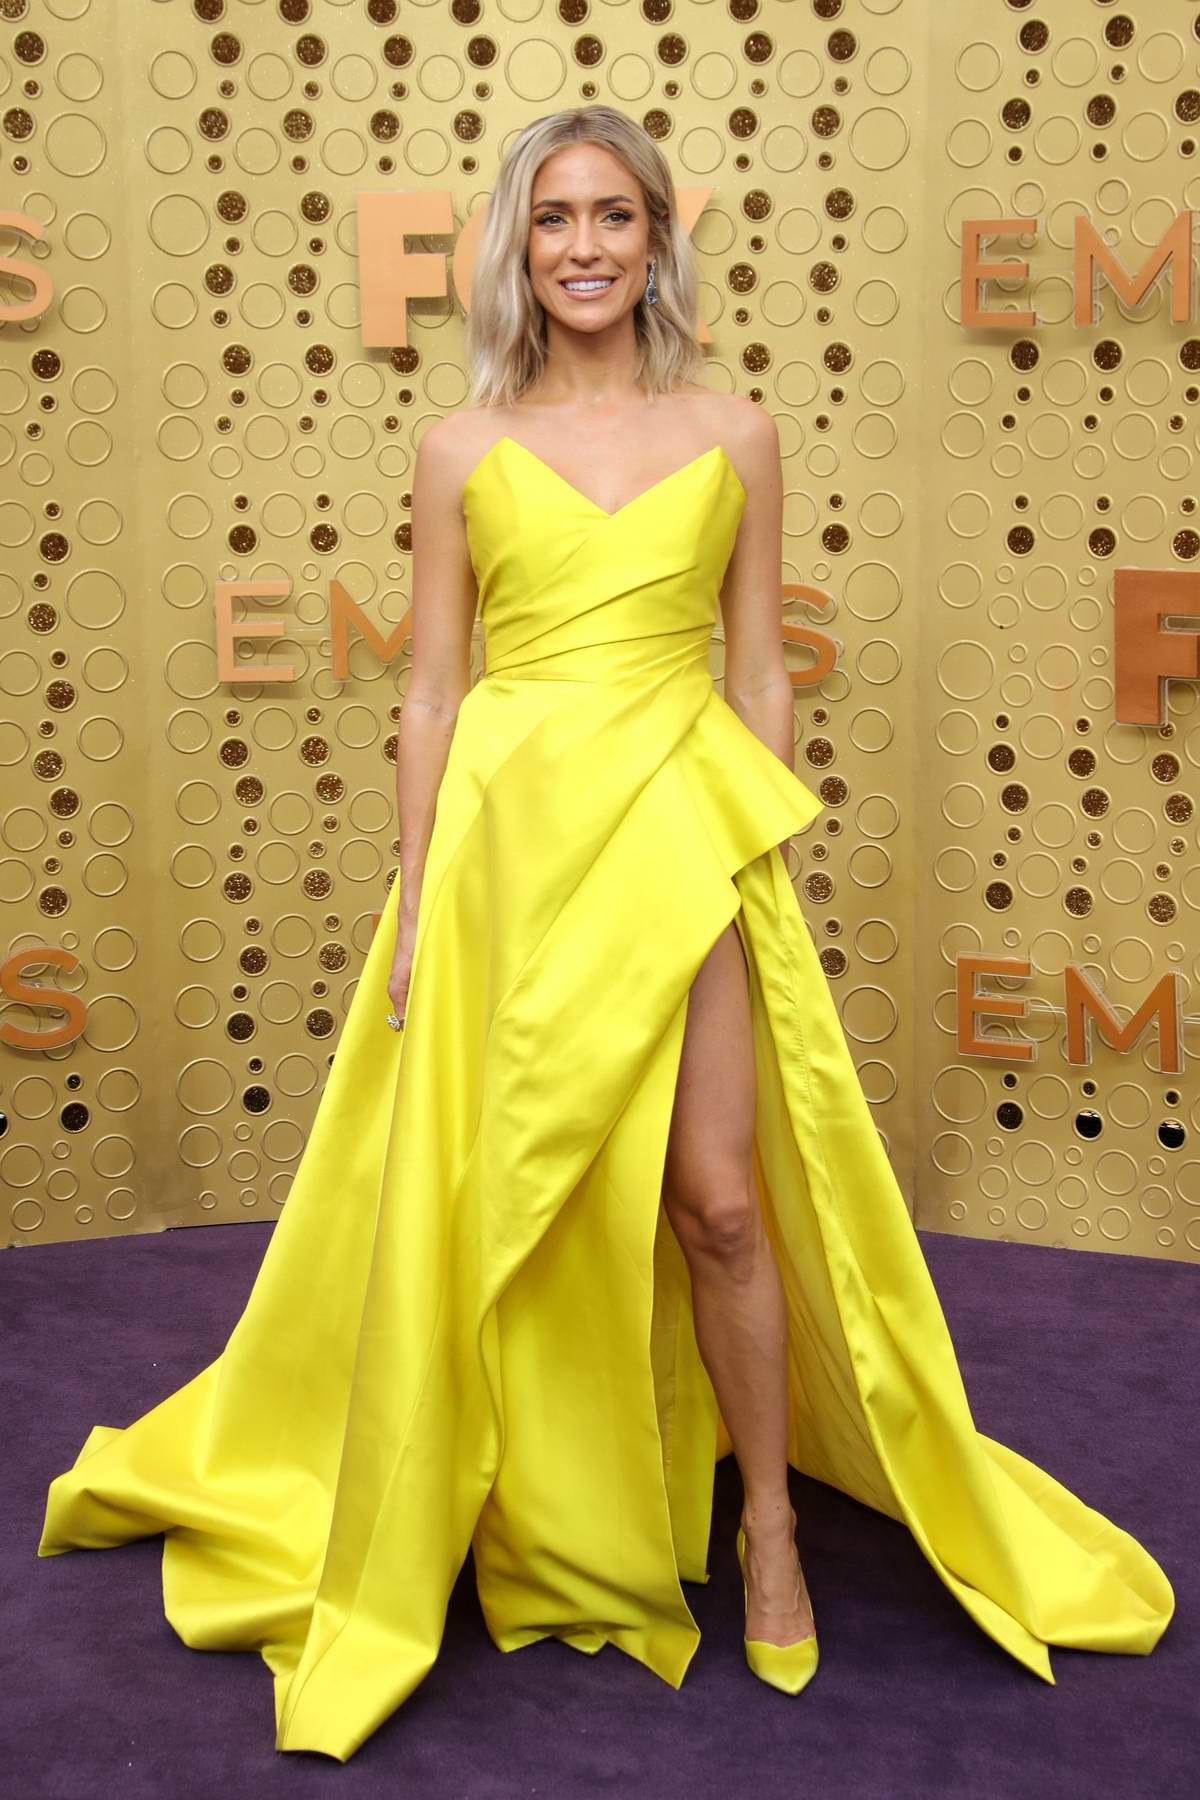 Kristin Cavallari attends the 71st Primtetime Emmy Awards at Microsoft Theater in Los Angeles